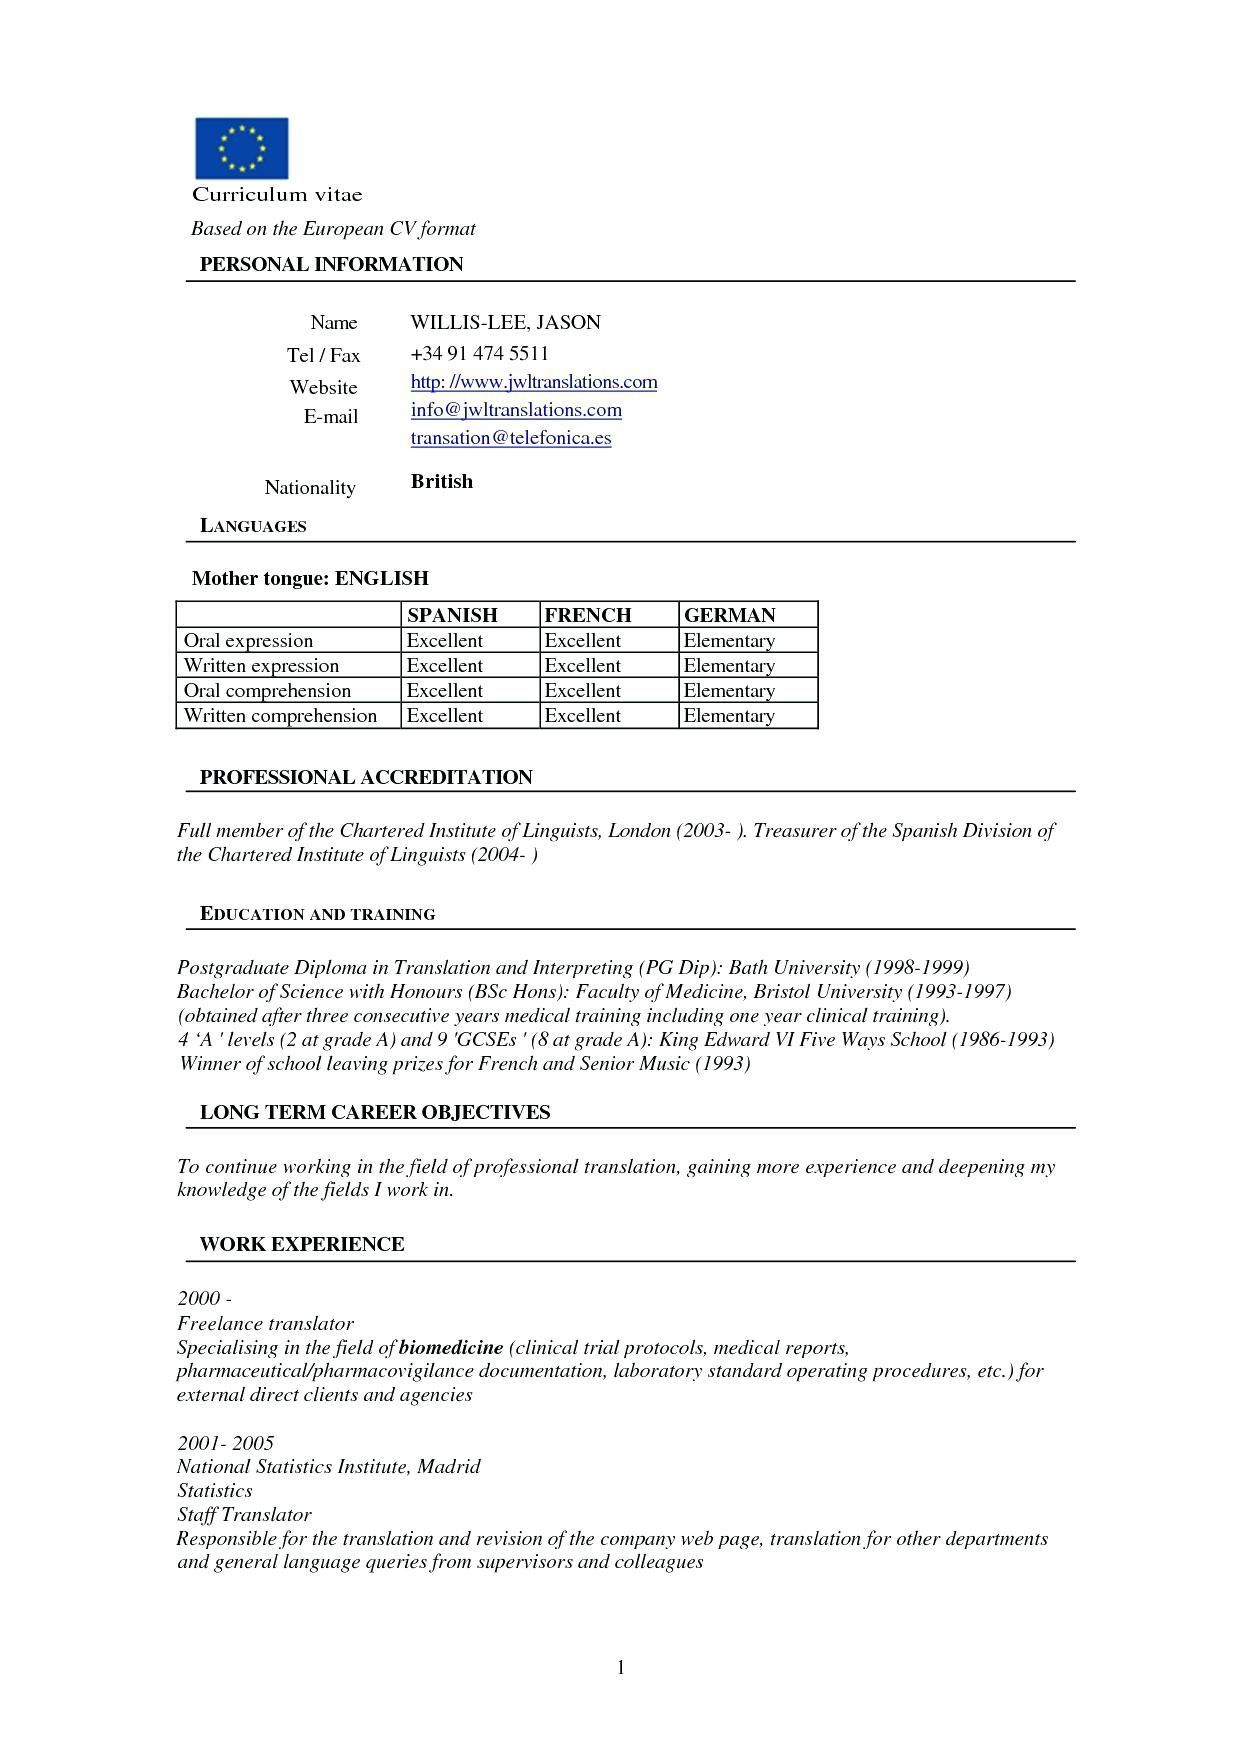 Resume format for freshers Resume template word Resume format Resume Resume templates